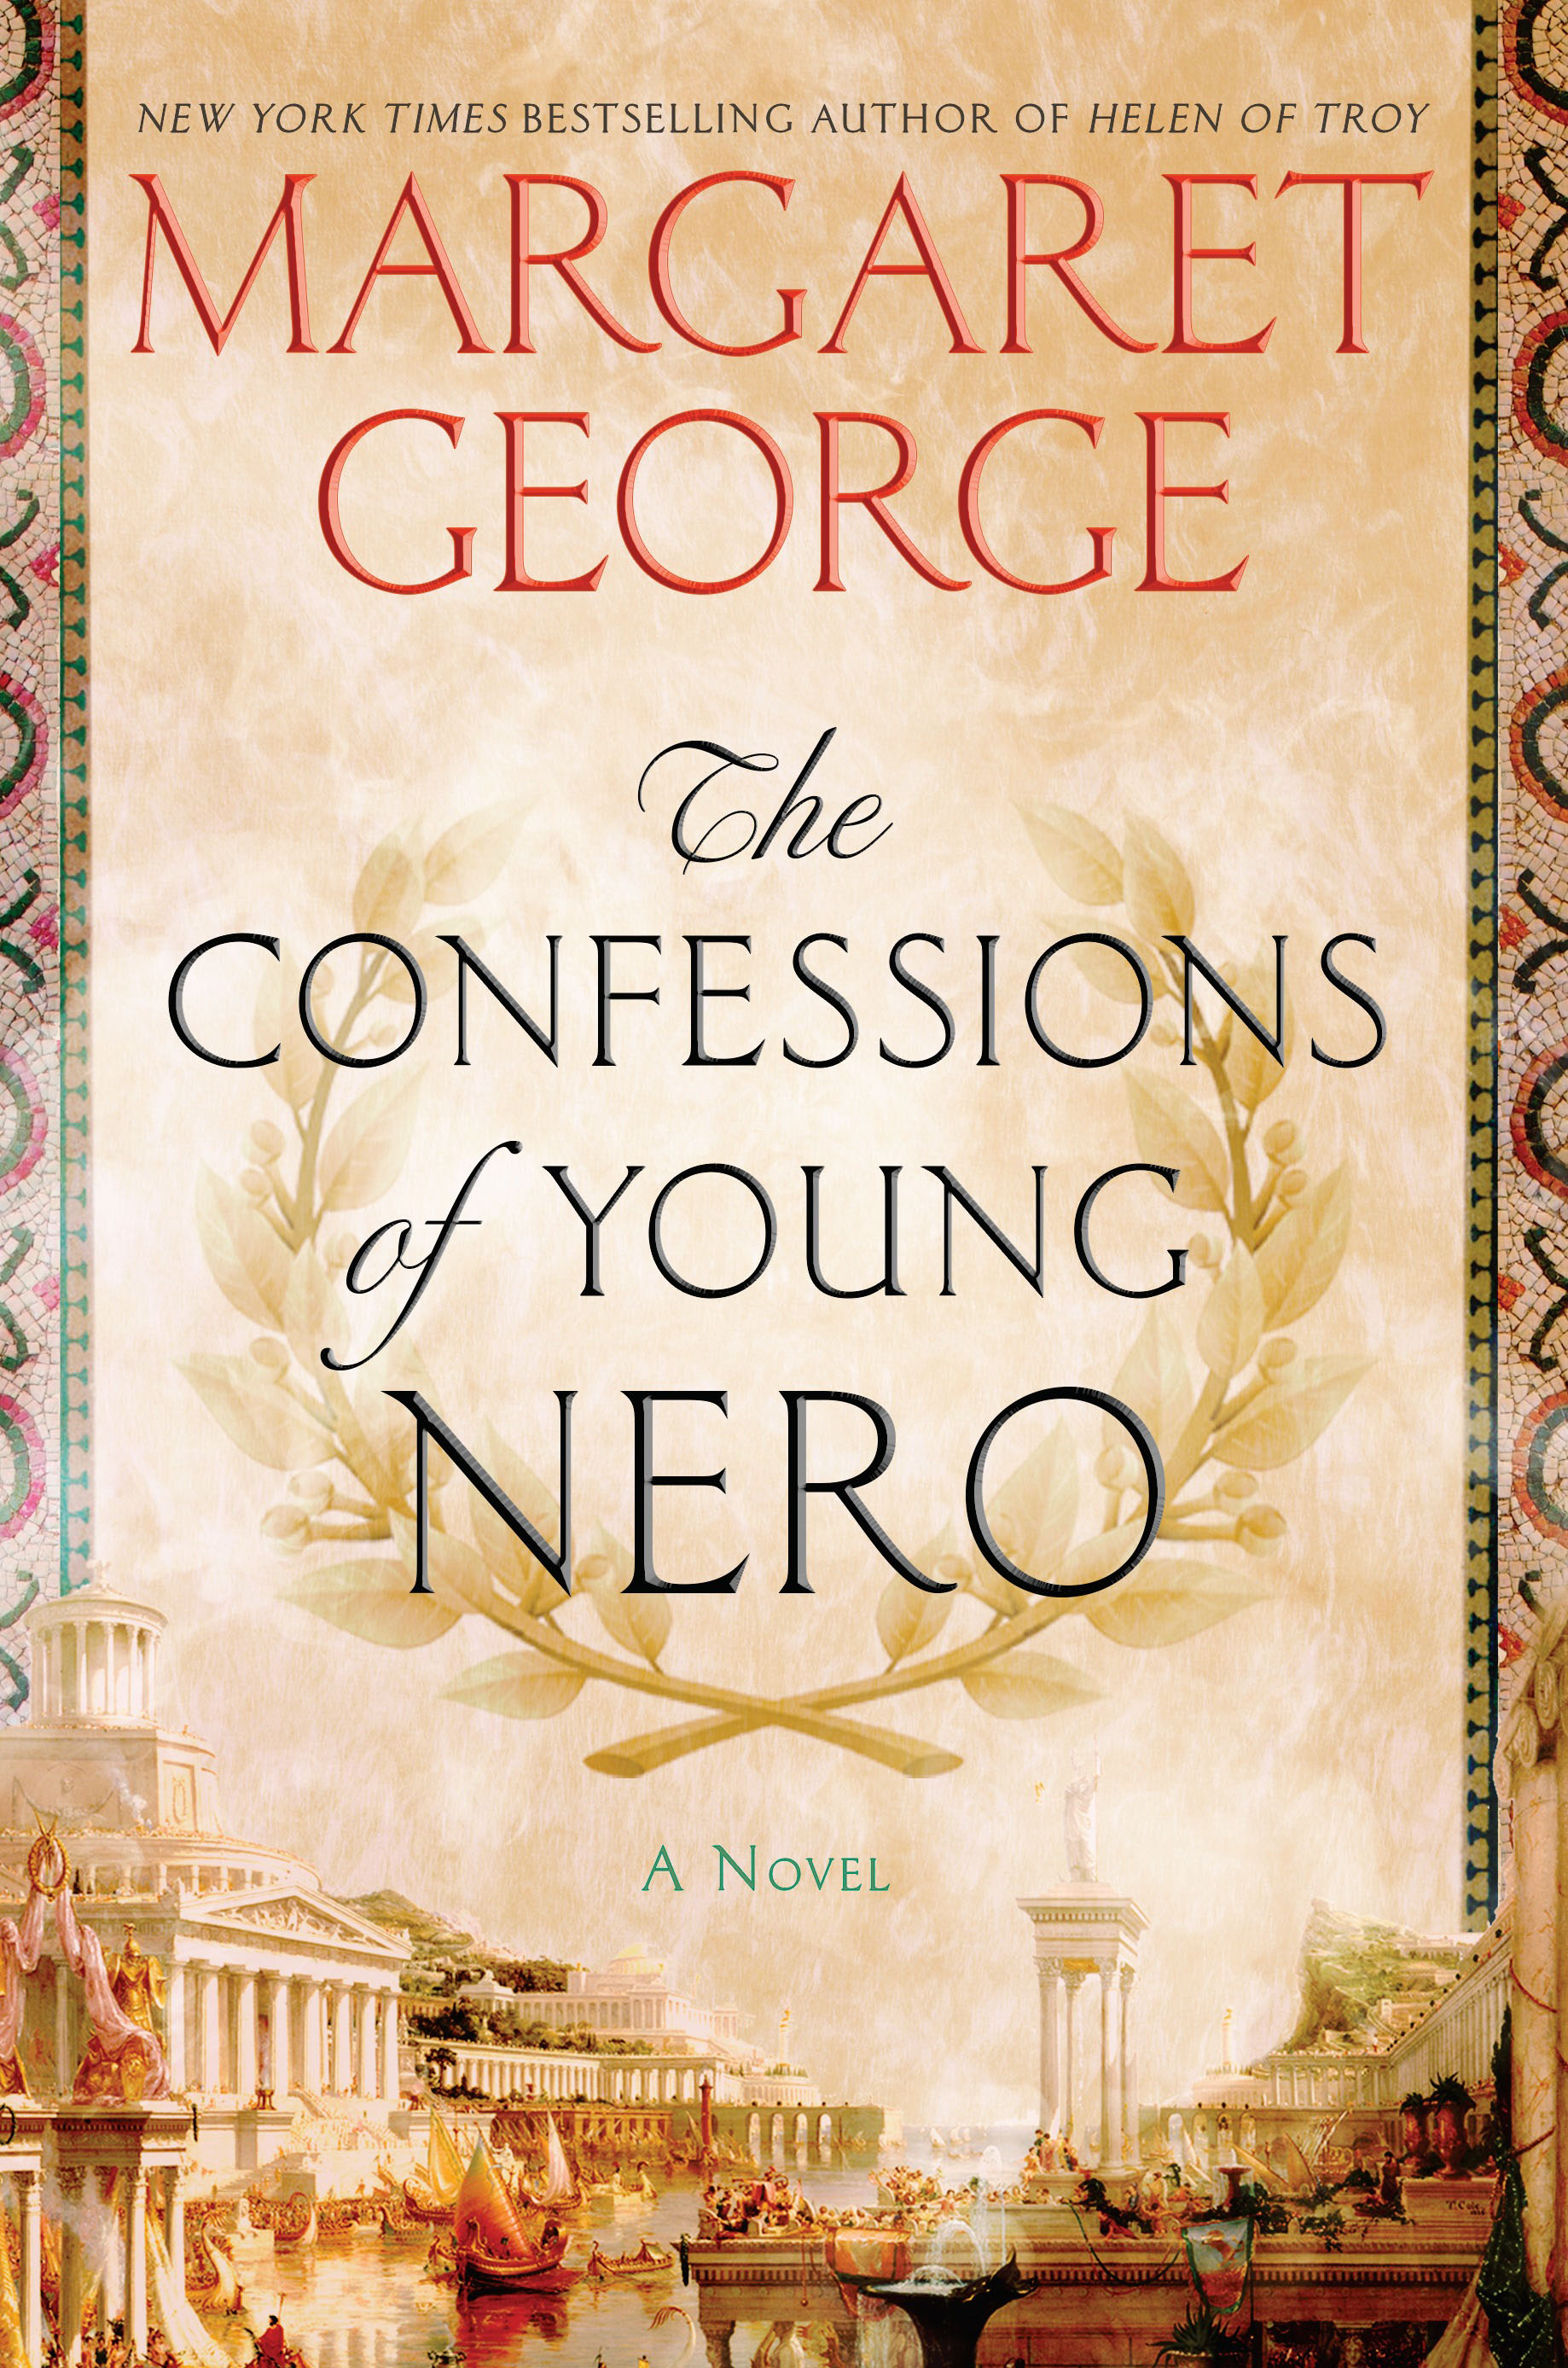 The Confessions of Young Nero blog of love